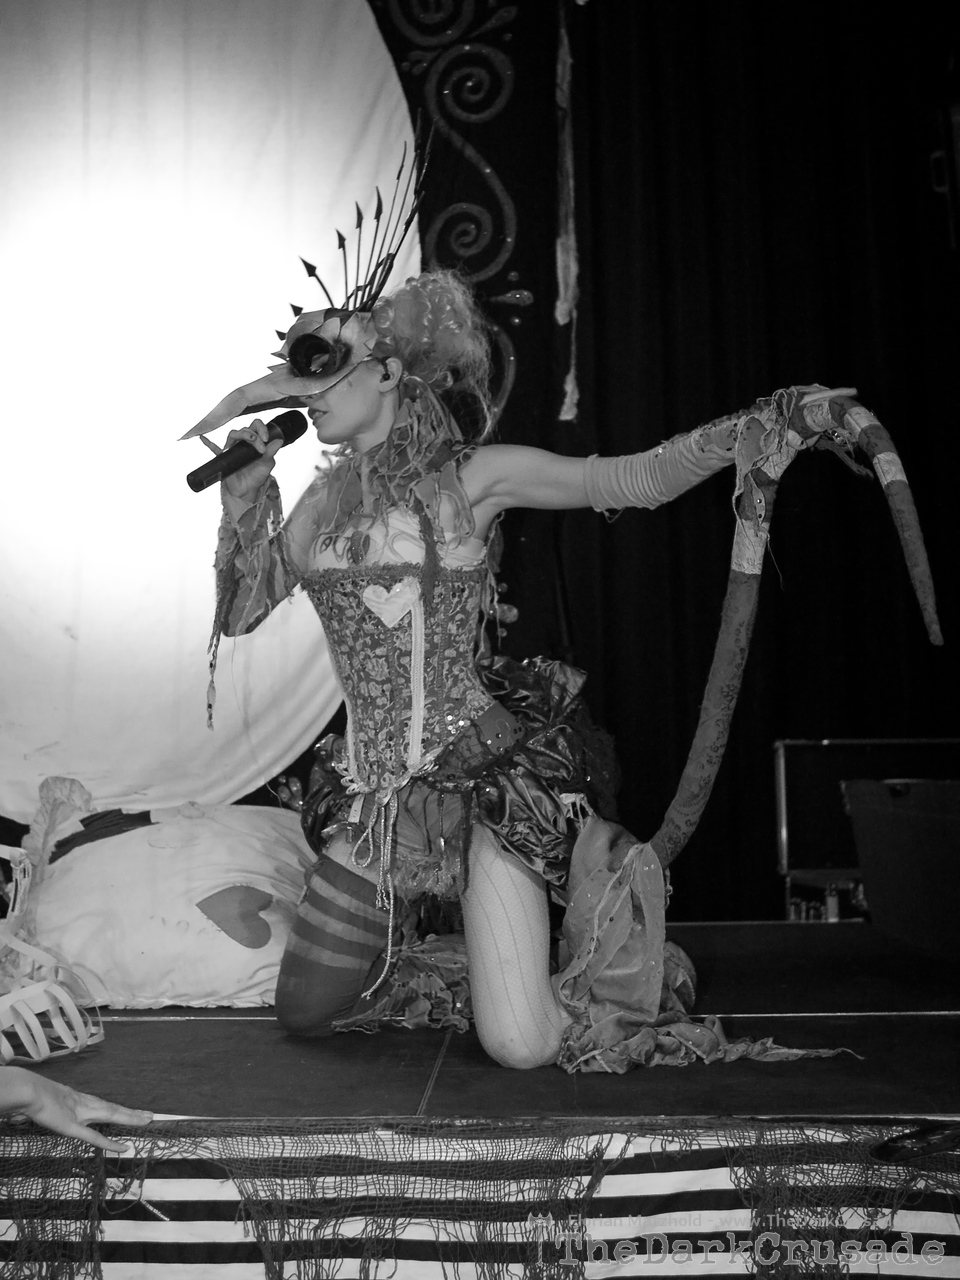 006 Emilie Autumn